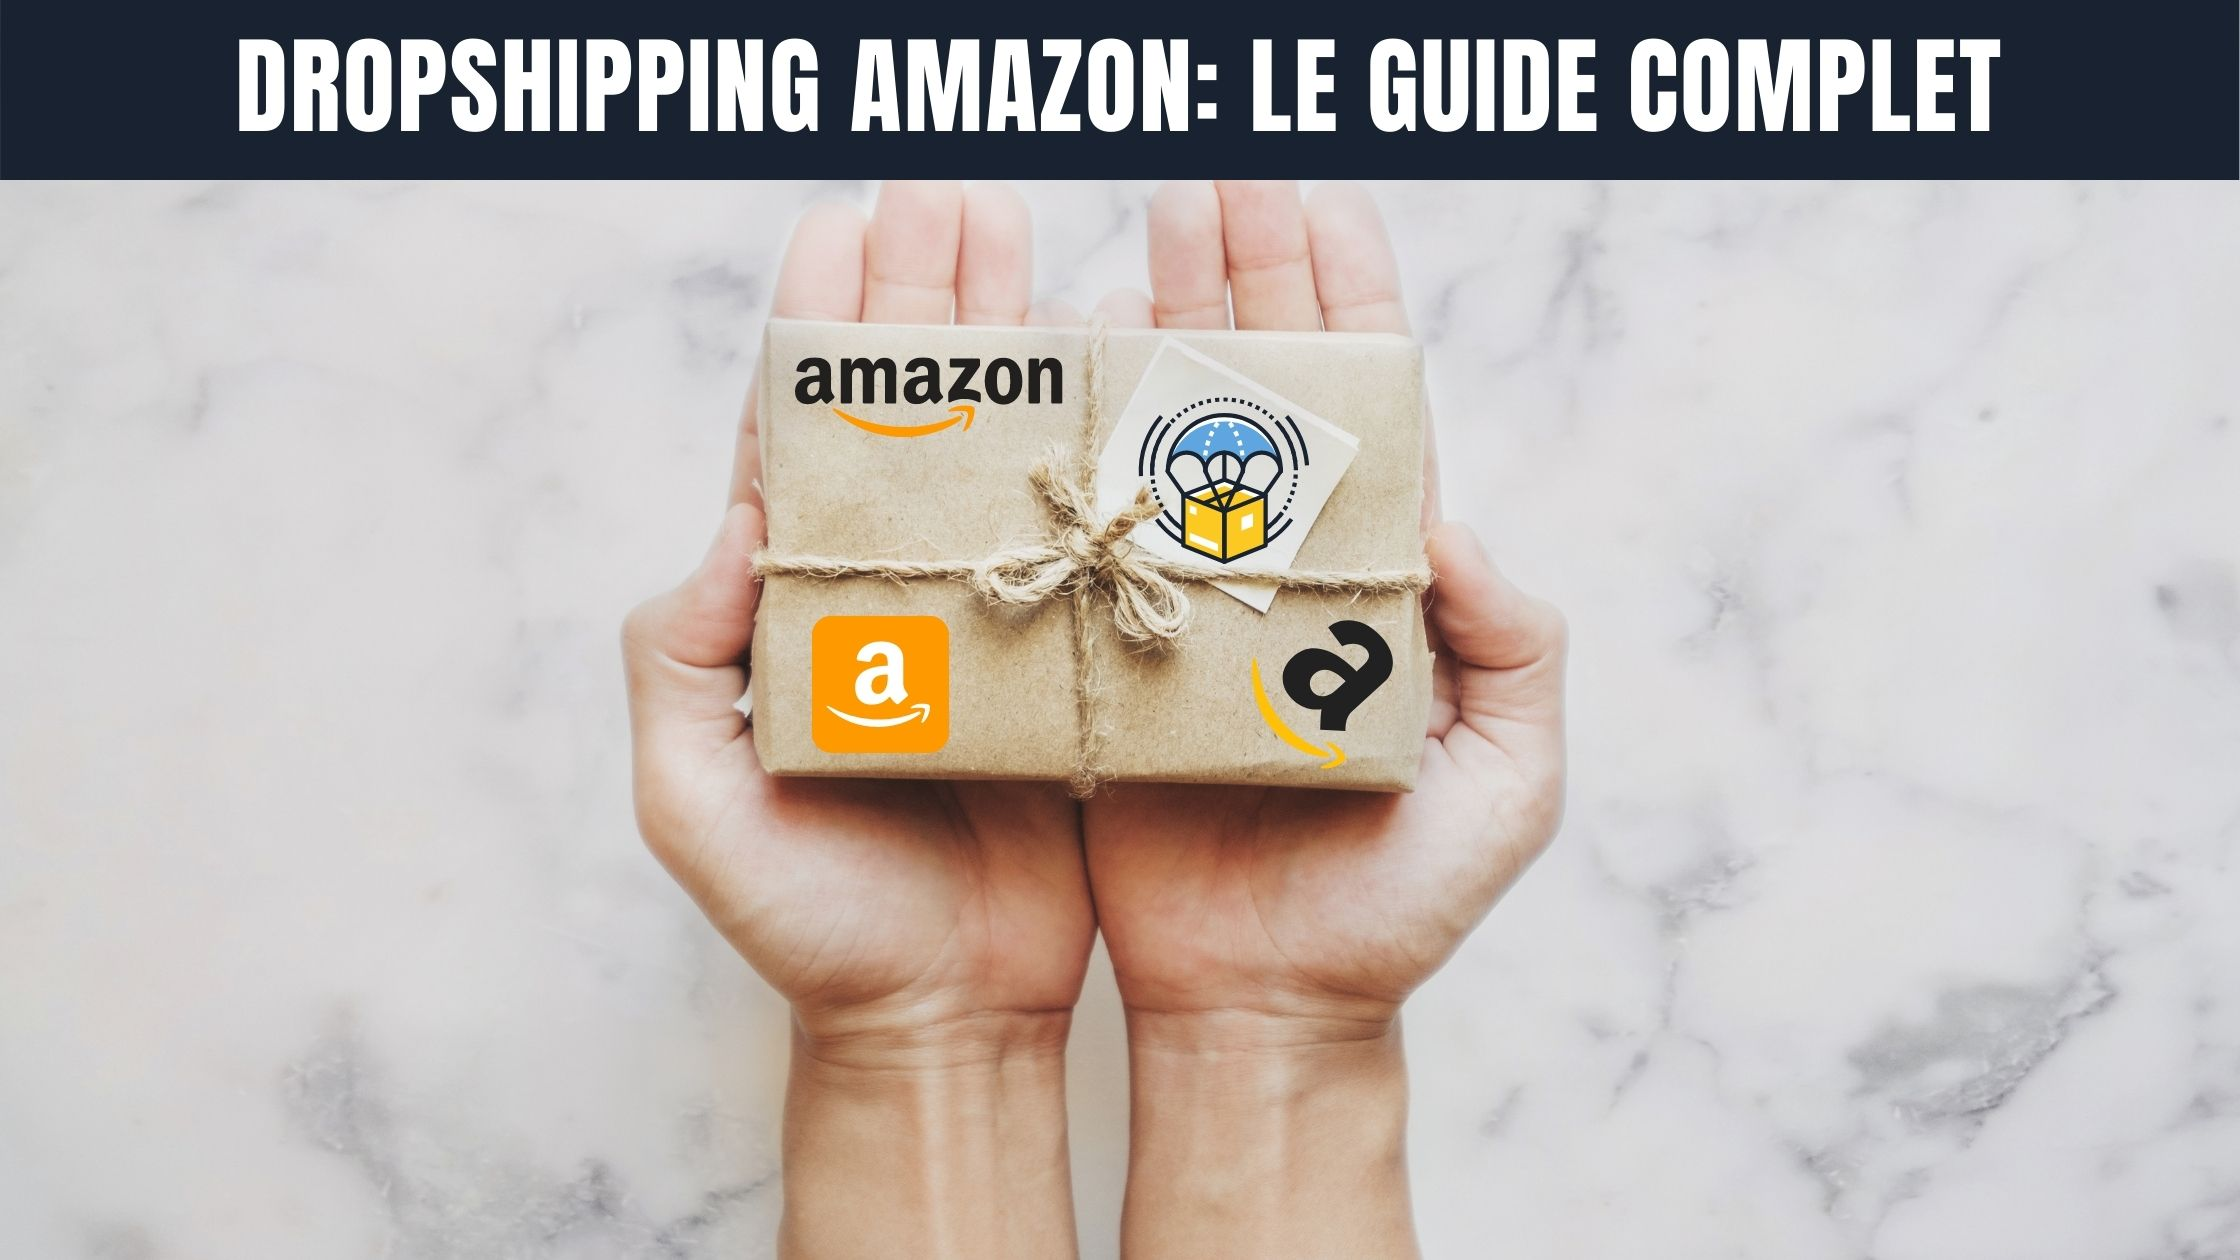 Amazon en dropshipping